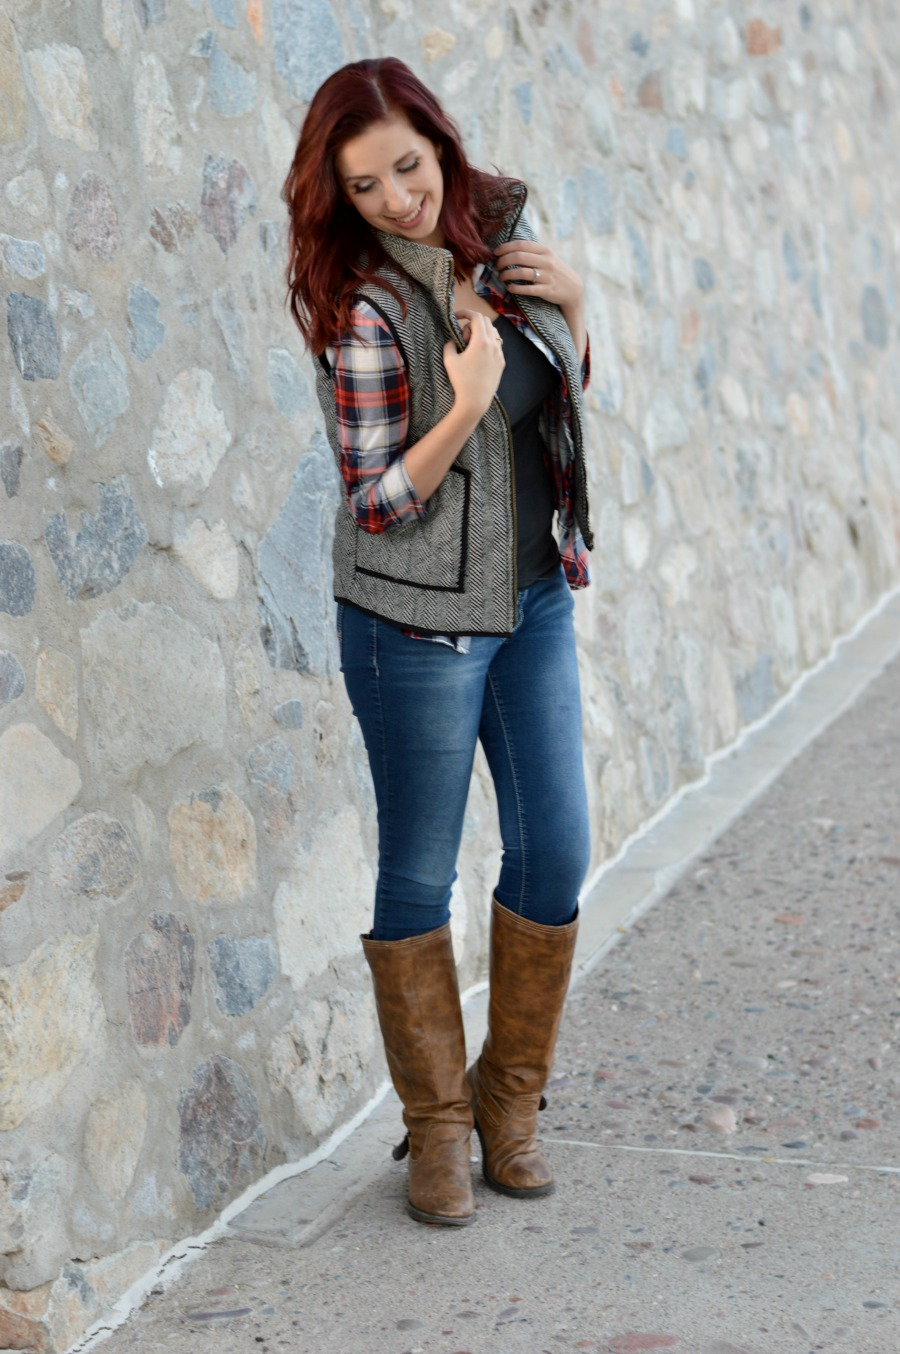 How to style a herringbone vest in the late winter or early spring! Here are 3 ways to create a herringbone vest outfit to keep you stylish while the seasons change from winter to spring // www.heytherechelsie.com